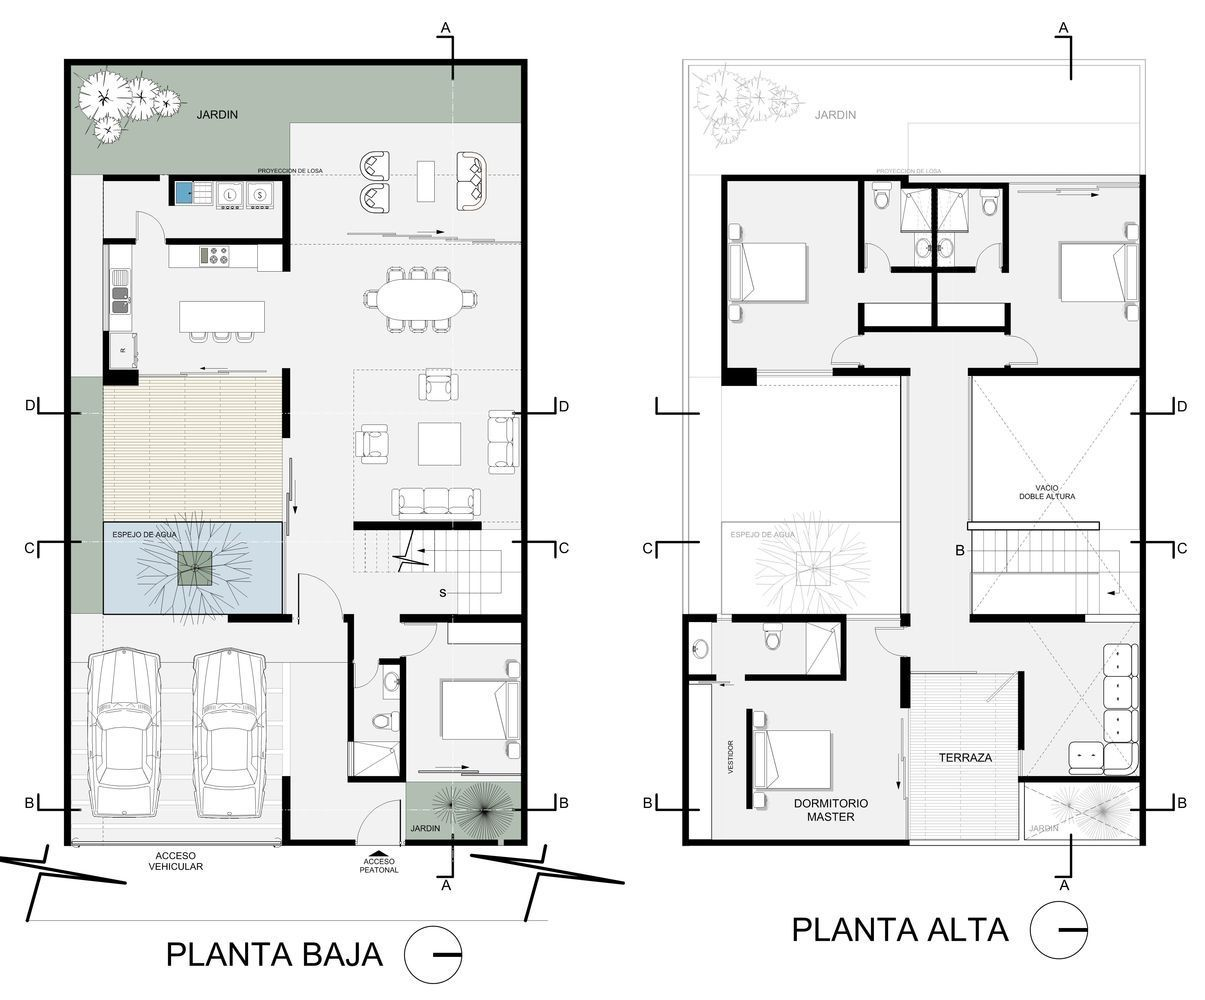 Top Ten Best Spring 2020 Wallpapers For Iphone X And Iphone 11 Architectural Floor Plans Modern House Design Floor Plan Design